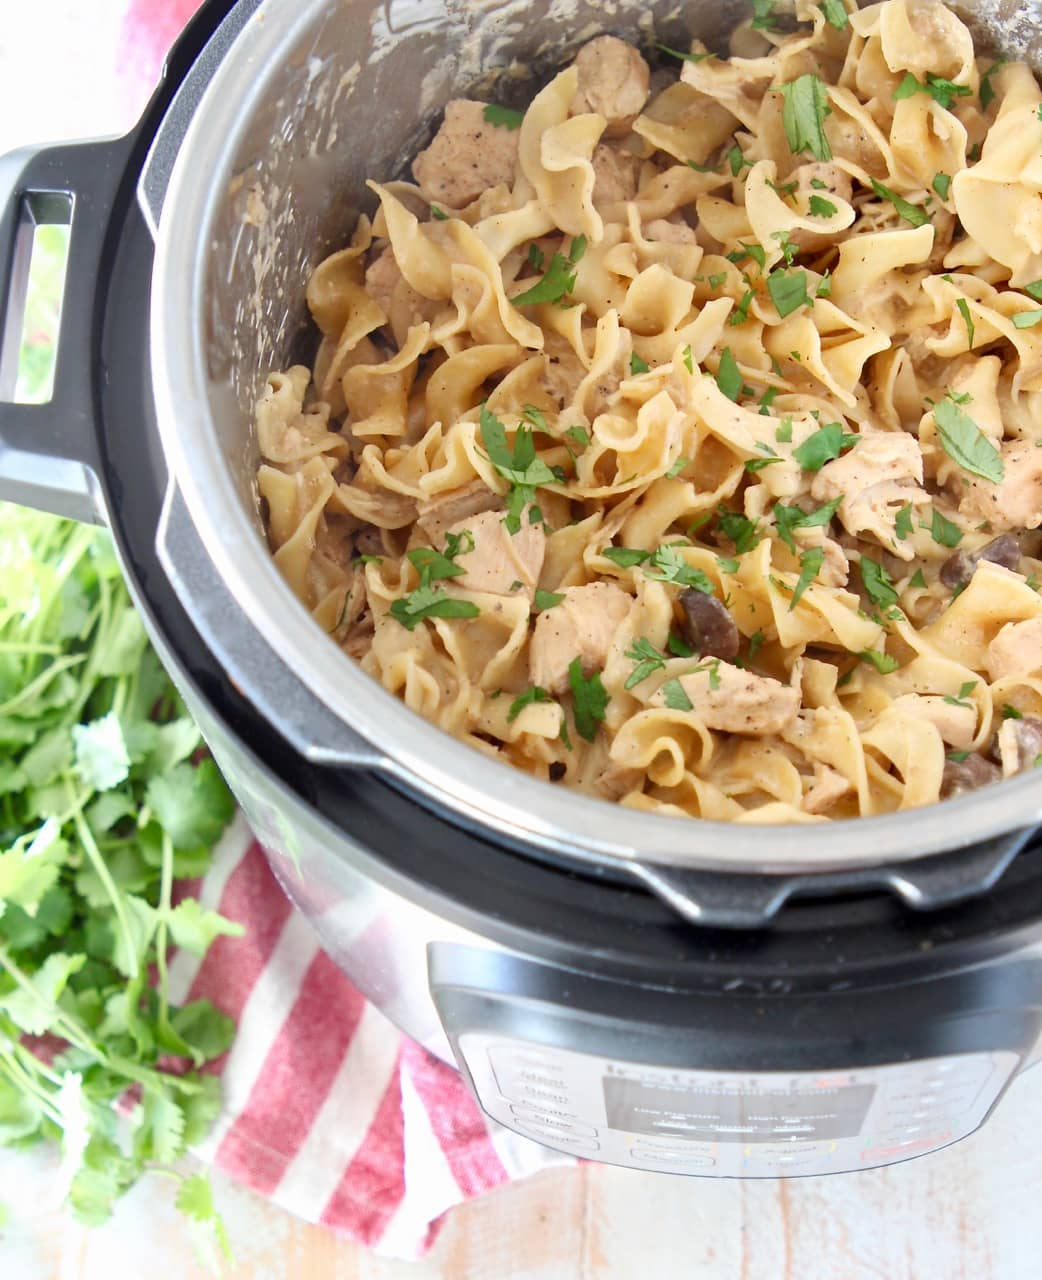 Chicken stroganoff with egg noodles in an Instant Pot, topped with fresh parsley